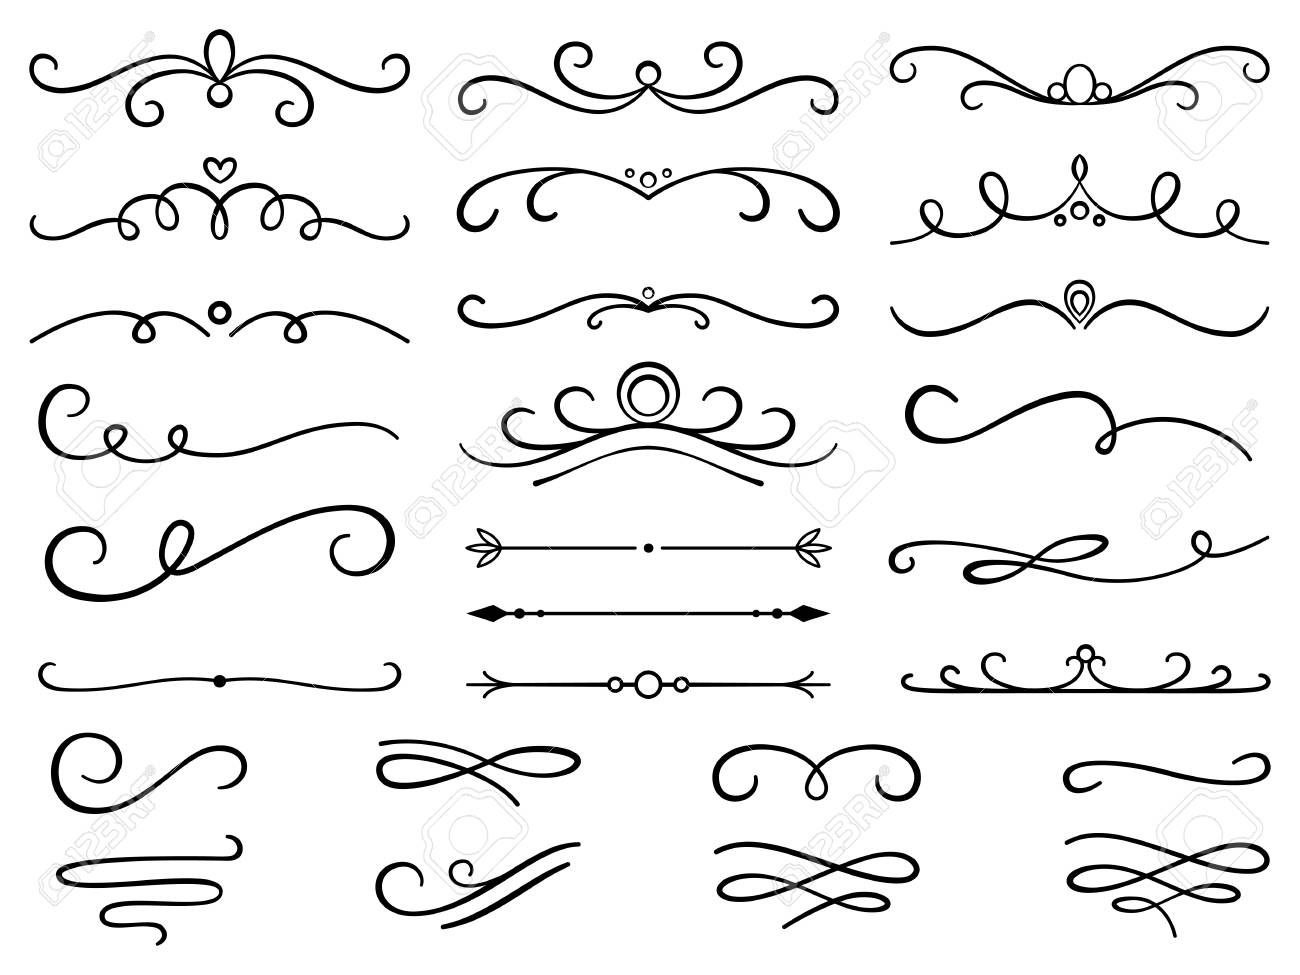 Image Result For Swirl Designs Text Dividers Text Dividers Vintage Text How To Draw Hands